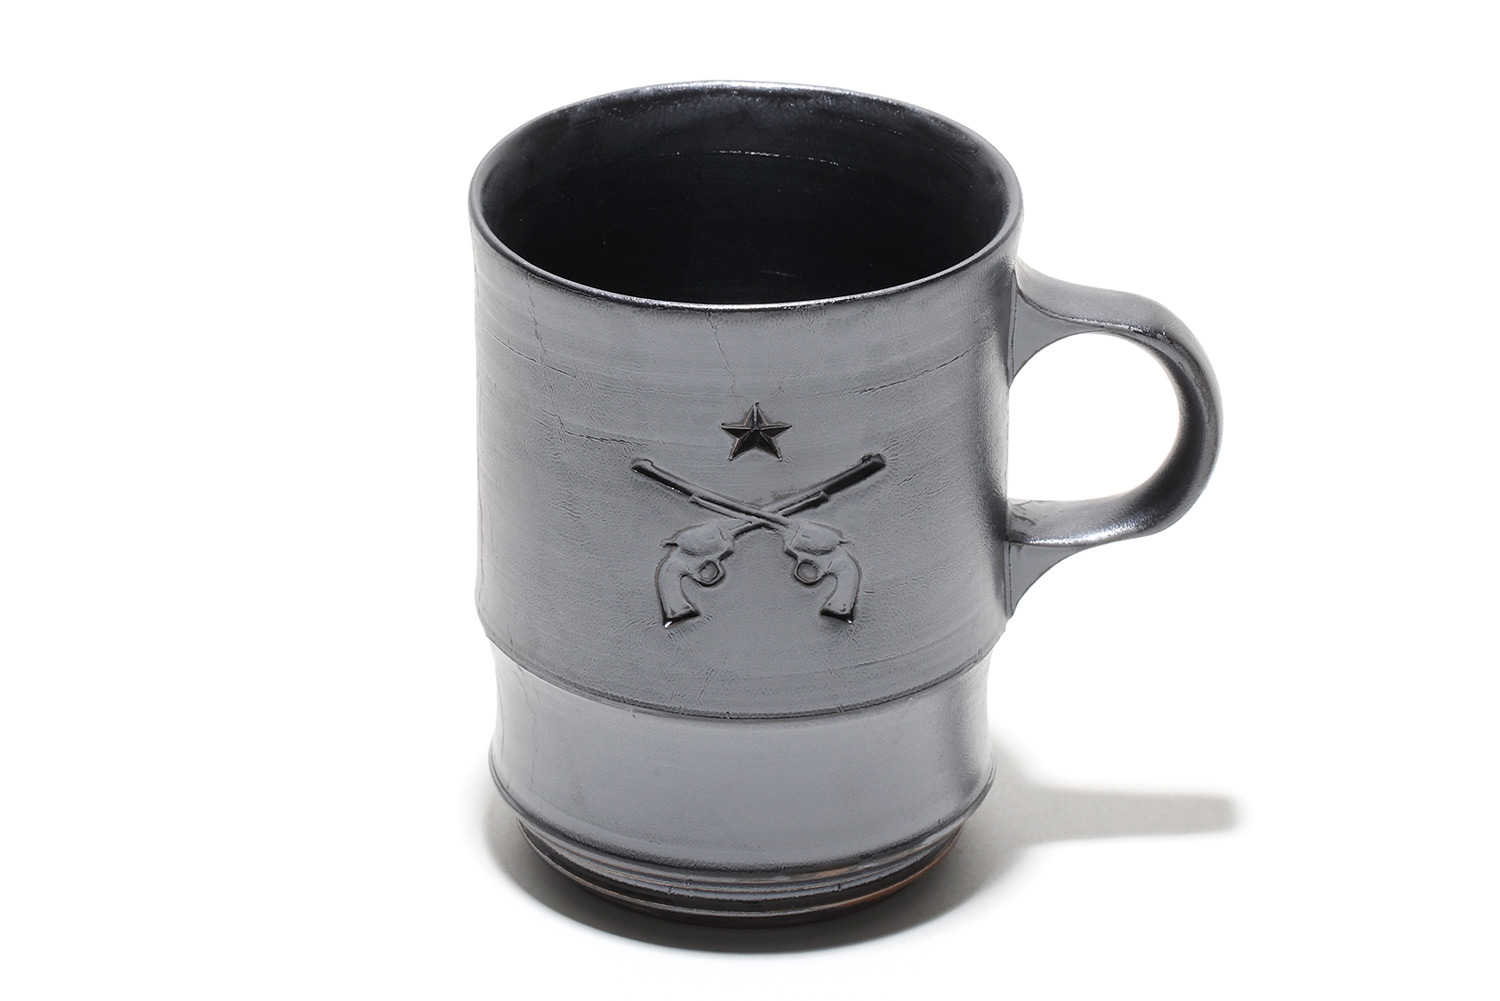 Shiro Hamanaka x roar Mug Collection